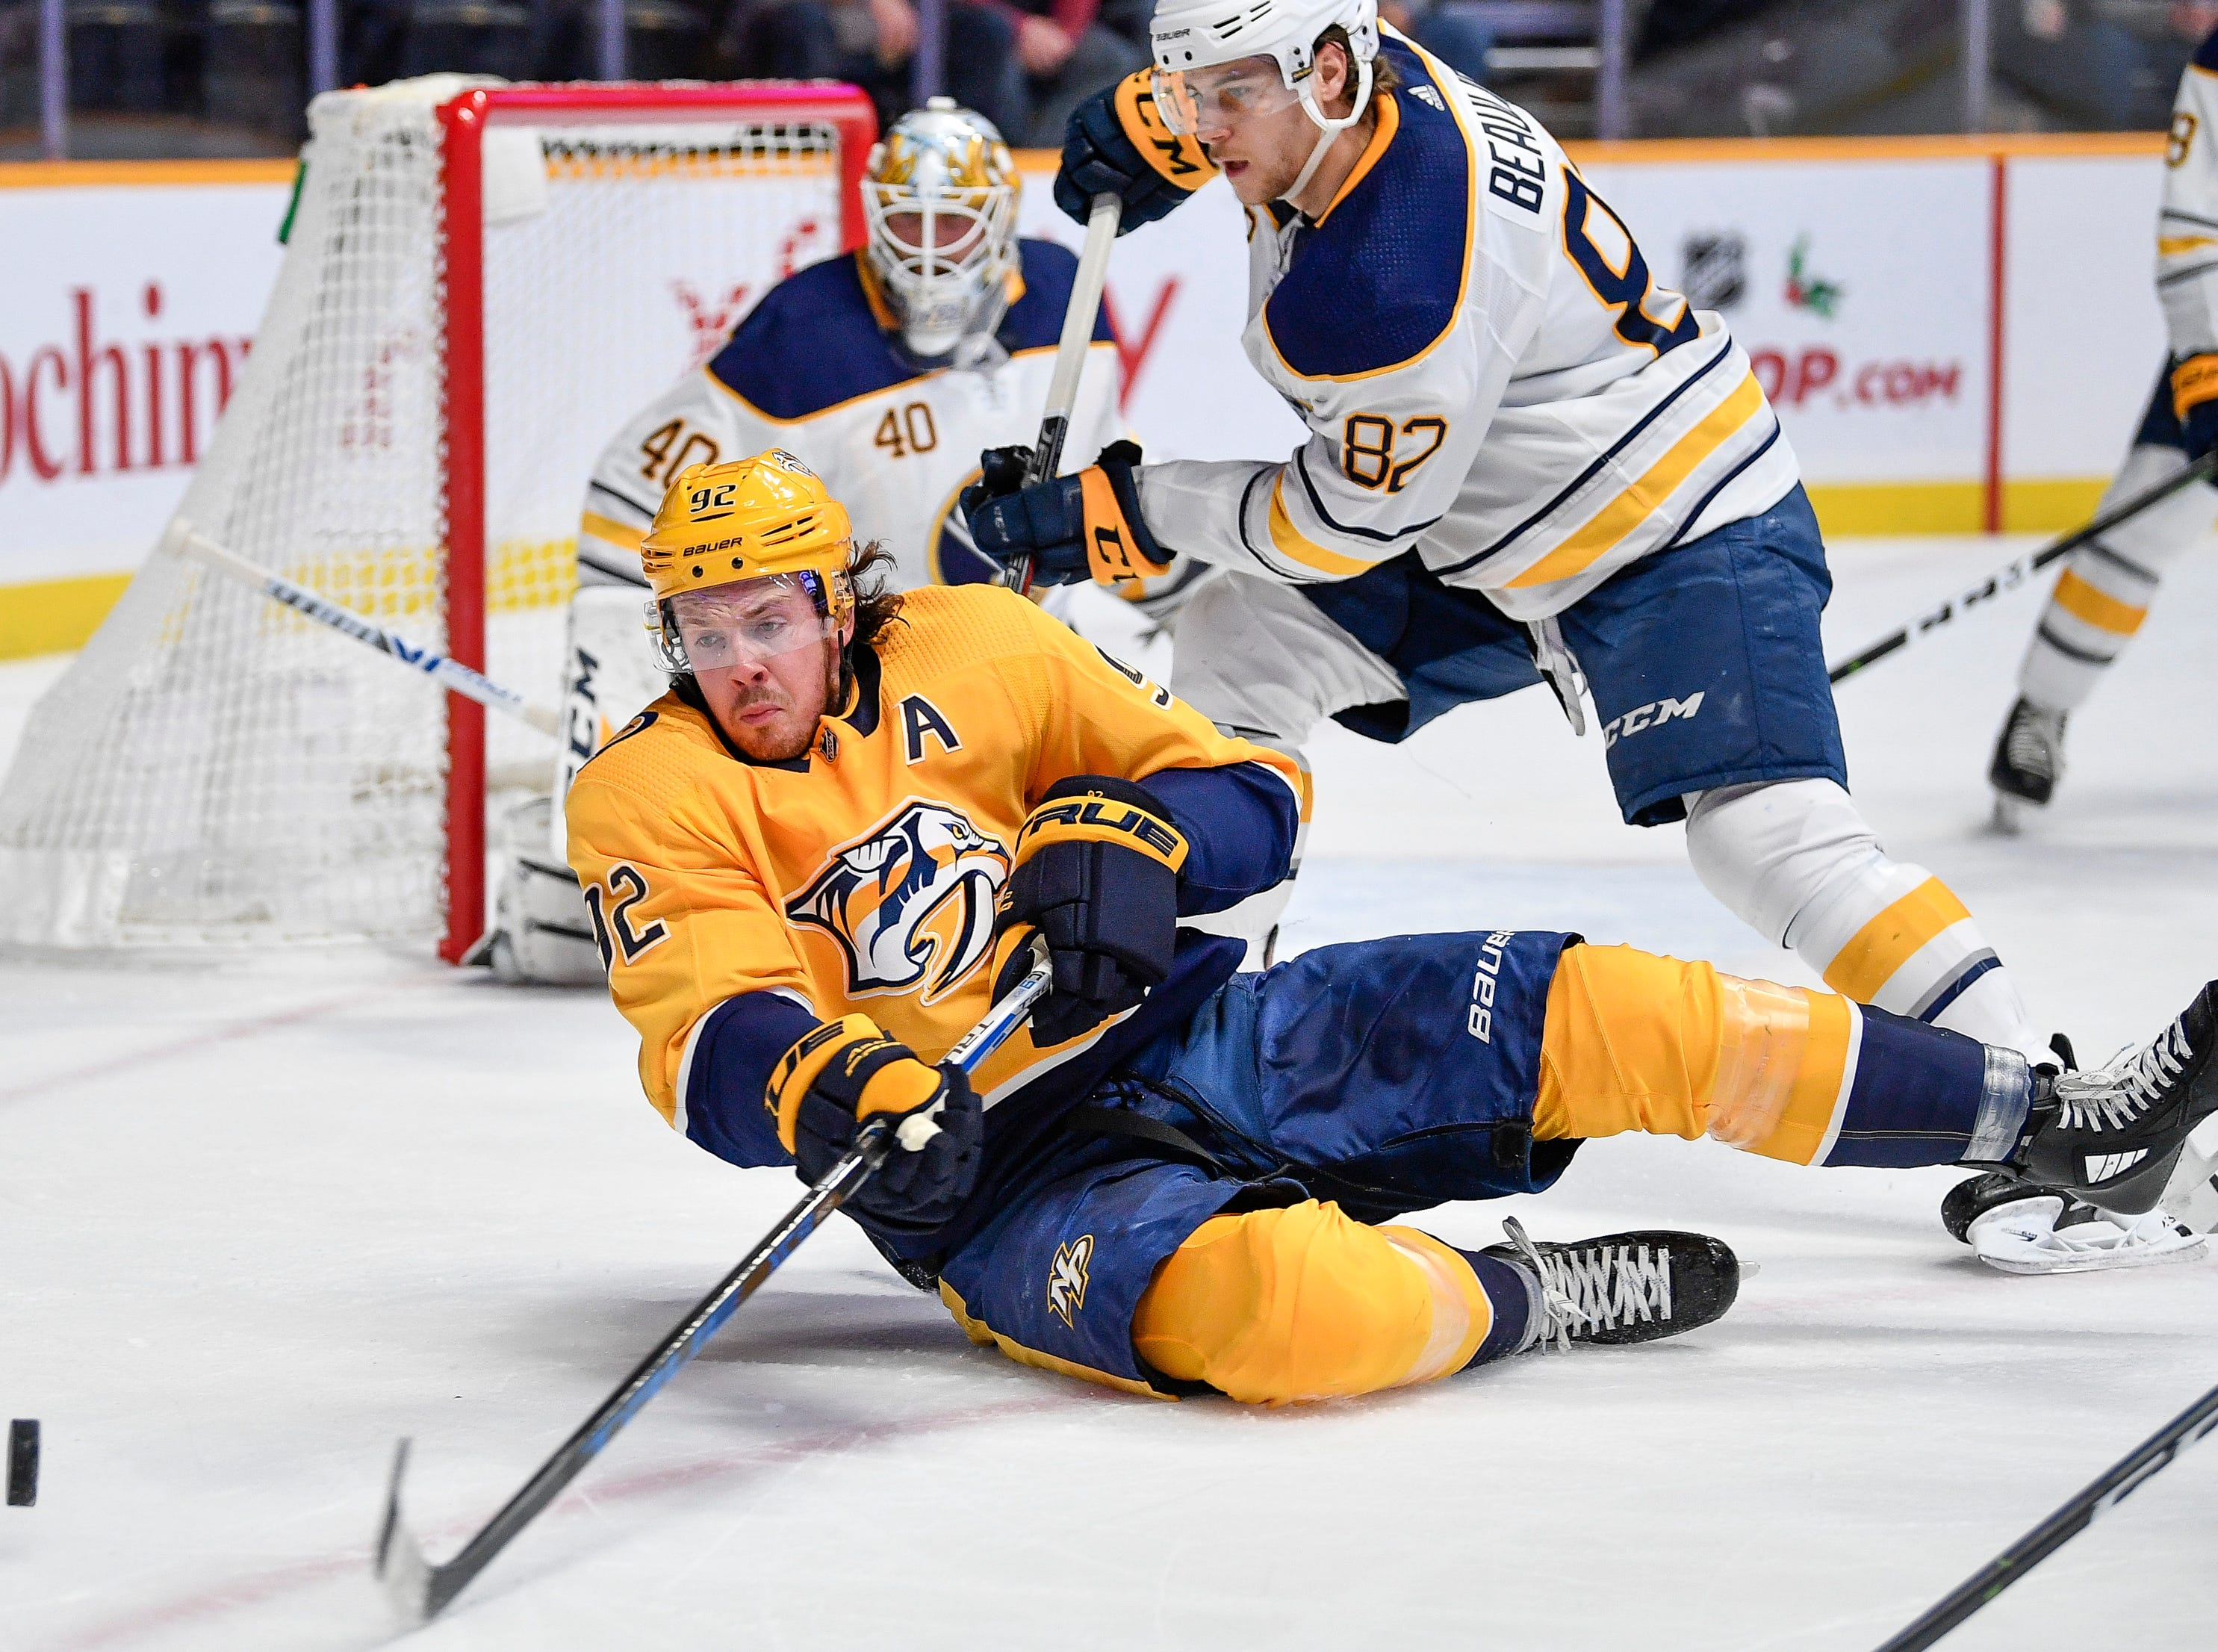 Nashville Predators center Ryan Johansen (92) dives for the puck with Buffalo Sabres defenseman Nathan Beaulieu (82) during the first period at Bridgestone Arena in Nashville, Tenn., Monday, Dec. 3, 2018.